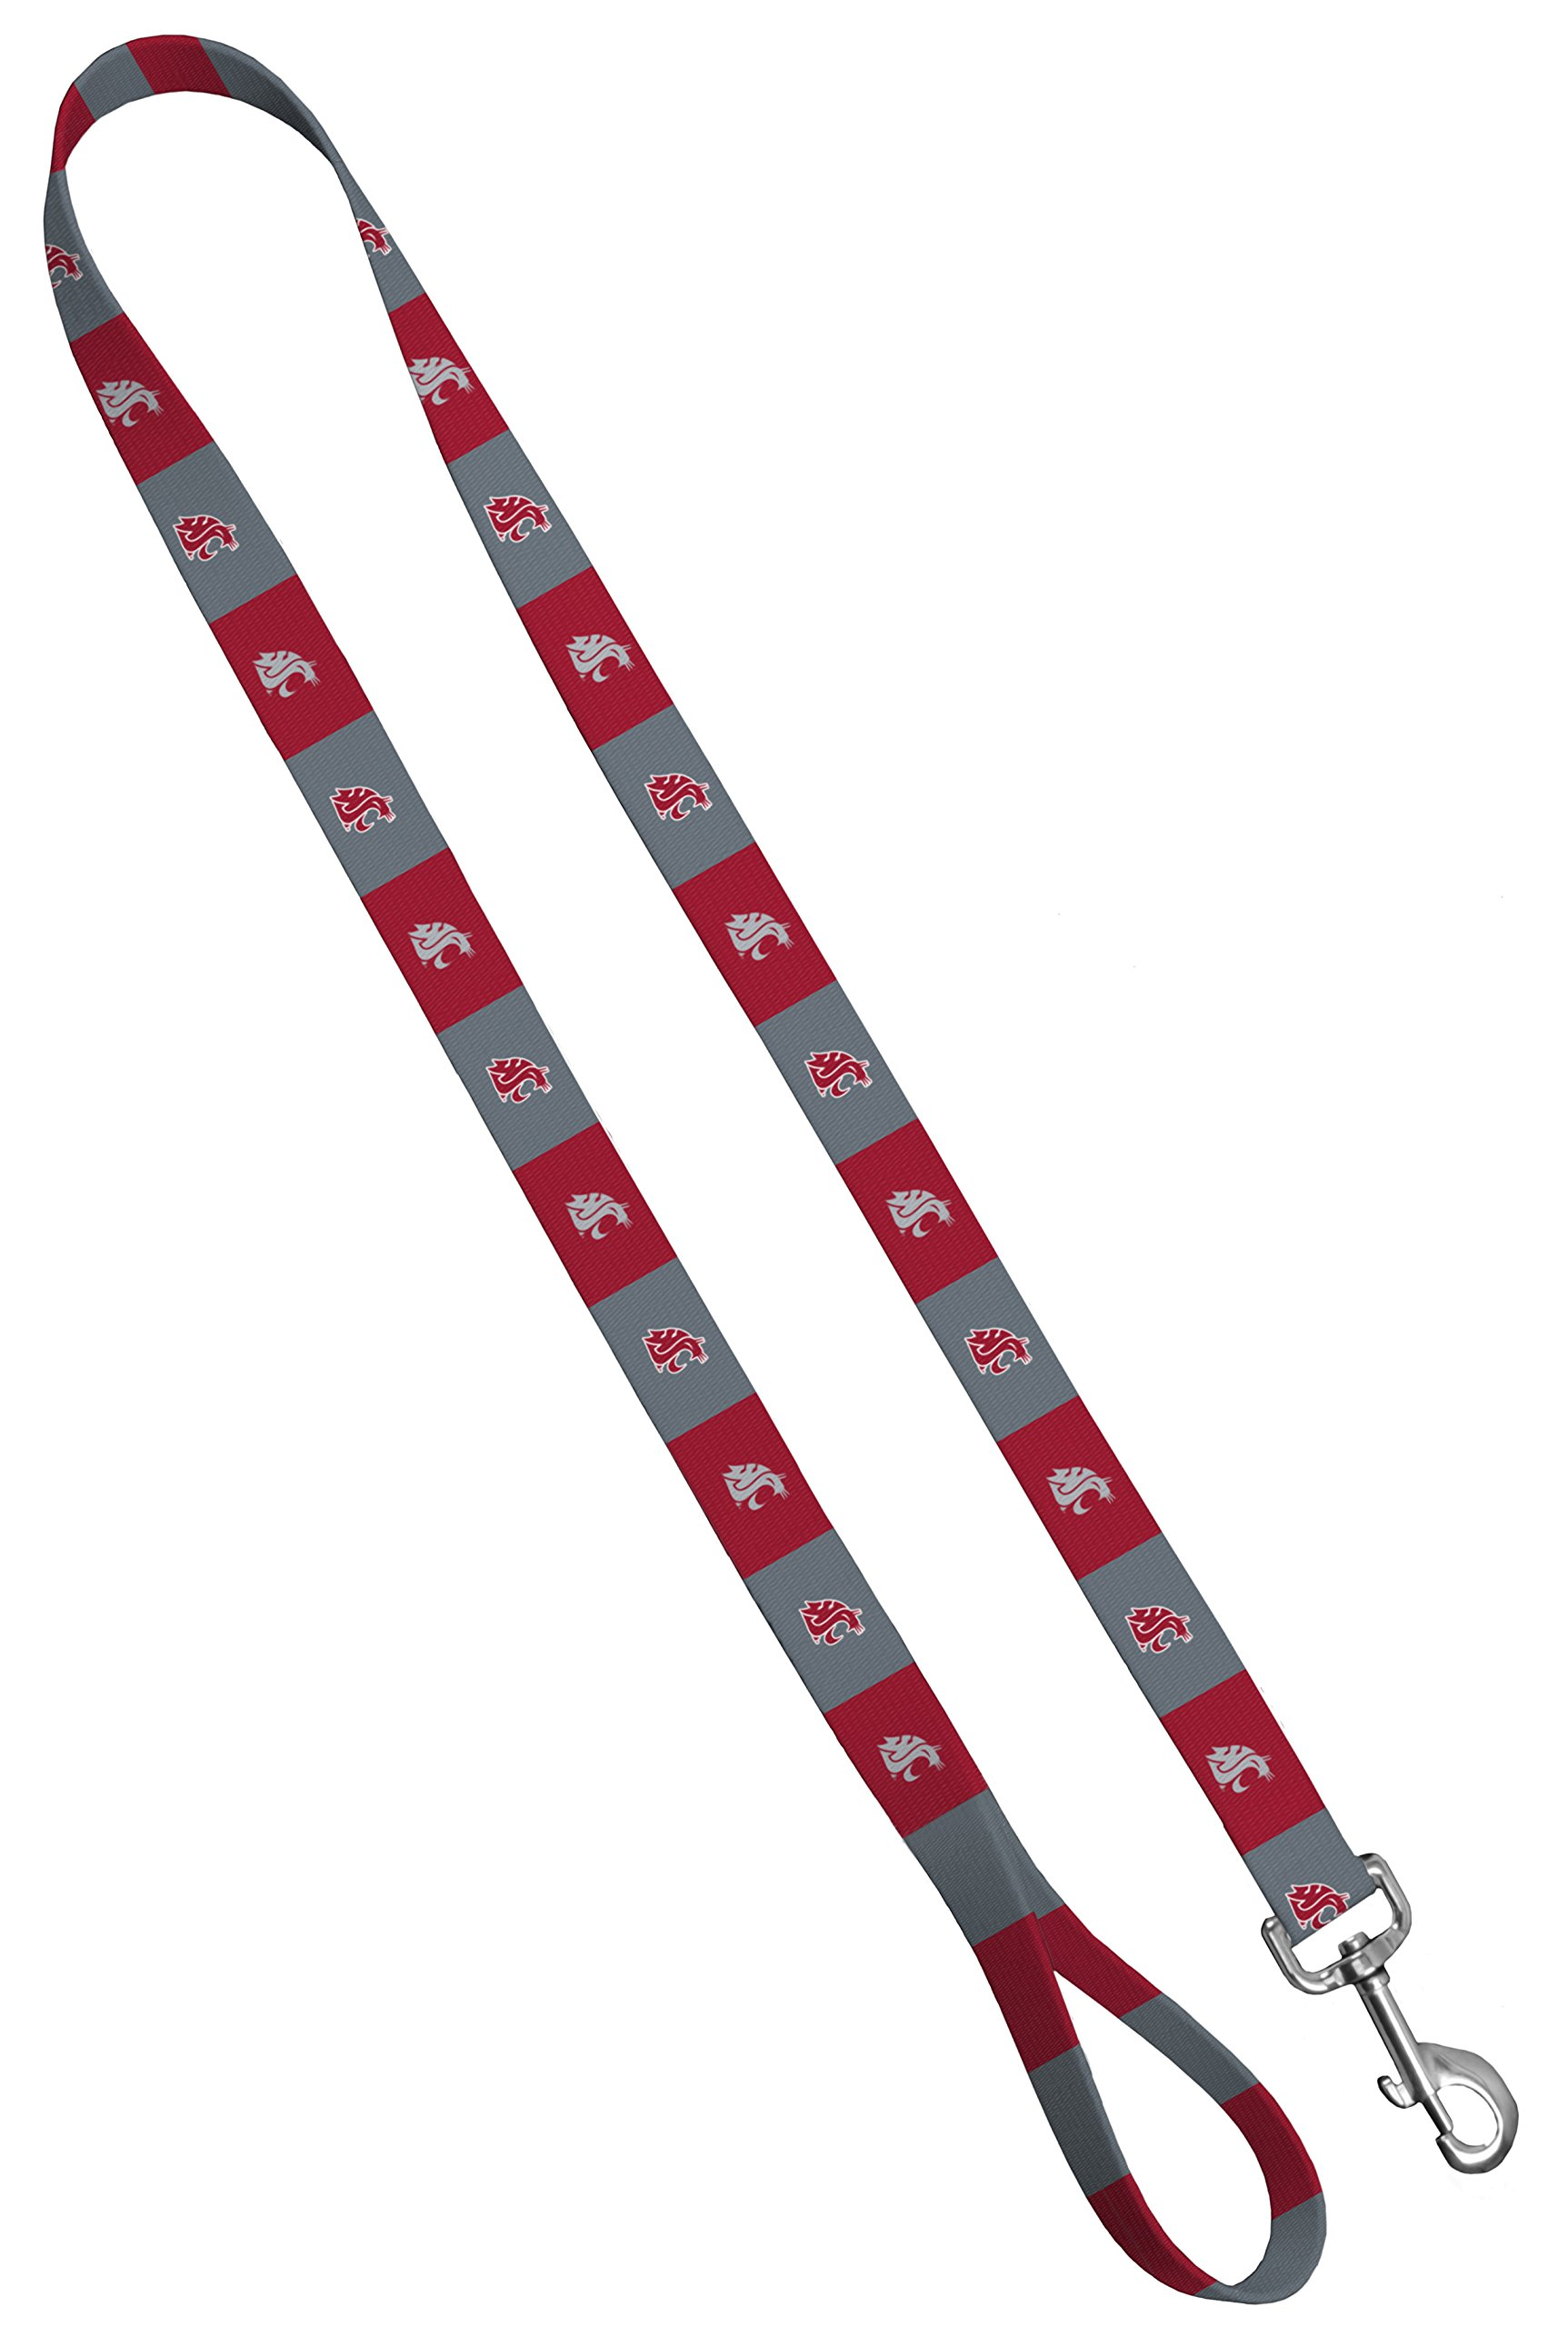 Moose Pet Wear Dog Leash – Washington State University Cougars Pet Leash, Made in the USA – 3/4 Inch Wide x 6 Feet Long, Red/Gray Box Logo